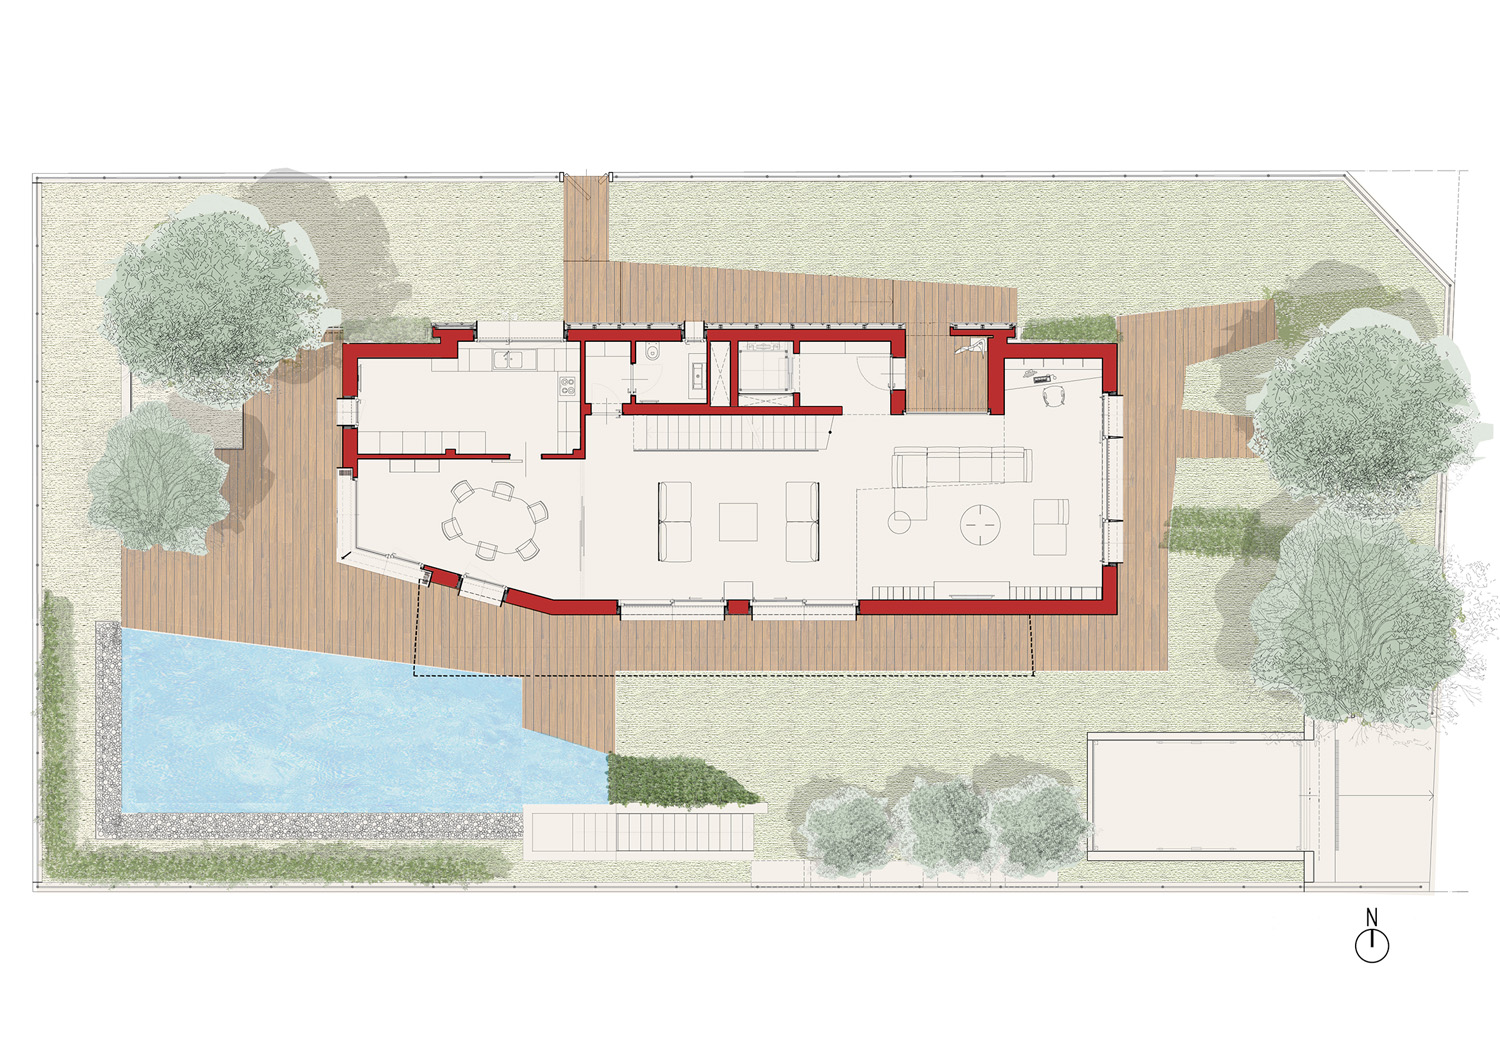 ground floor plan angus fiori architects}